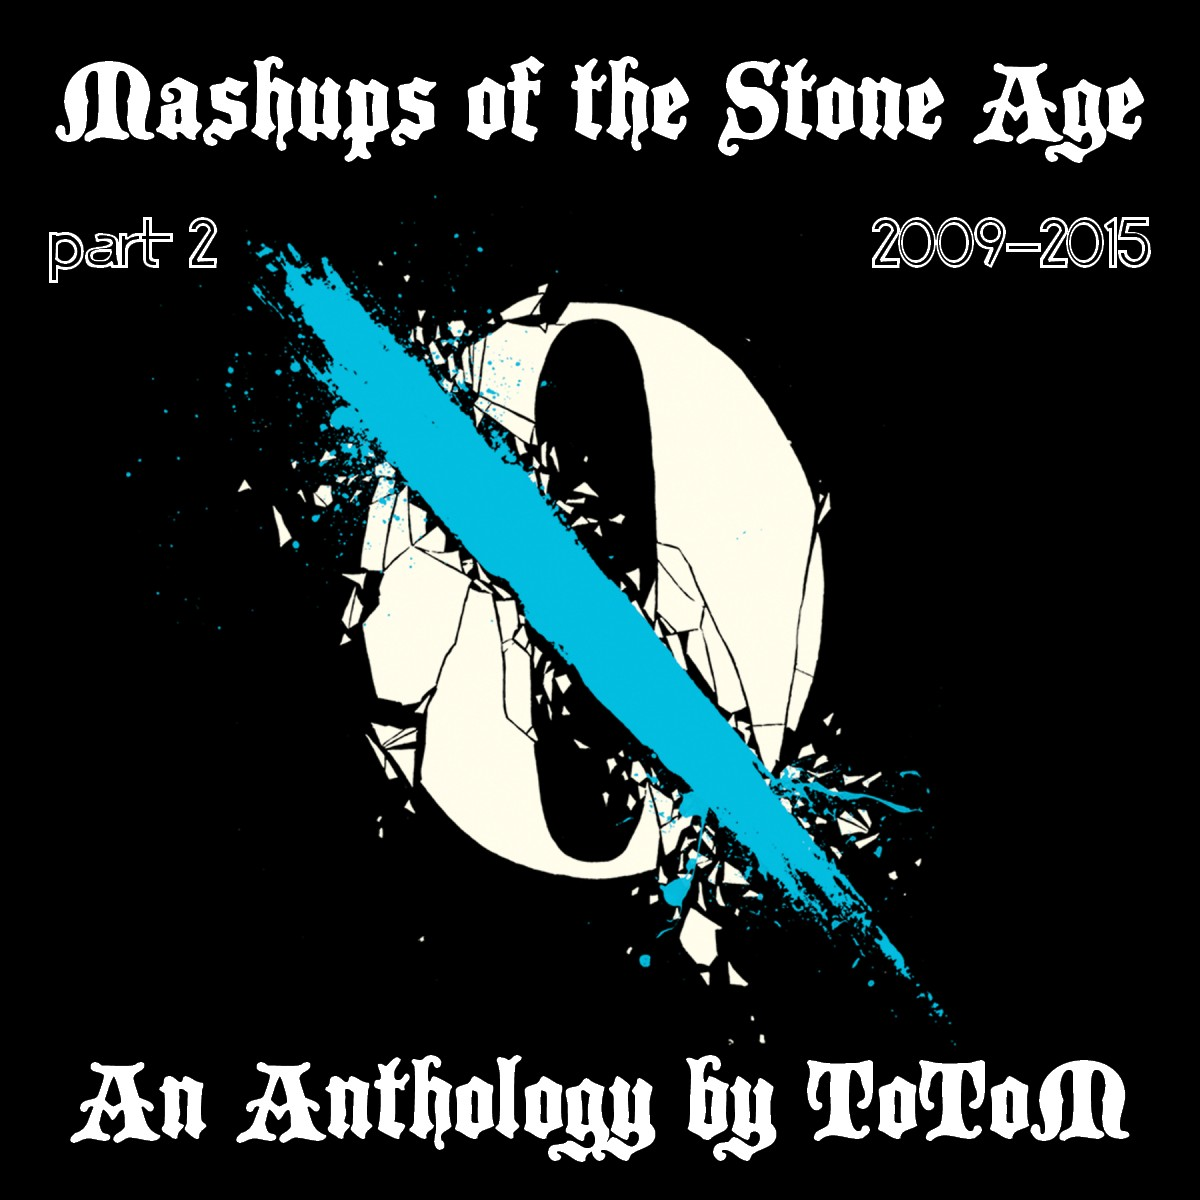 Every Known Borders are Insane (M.I.A. vs. Queens of the Stone Age)